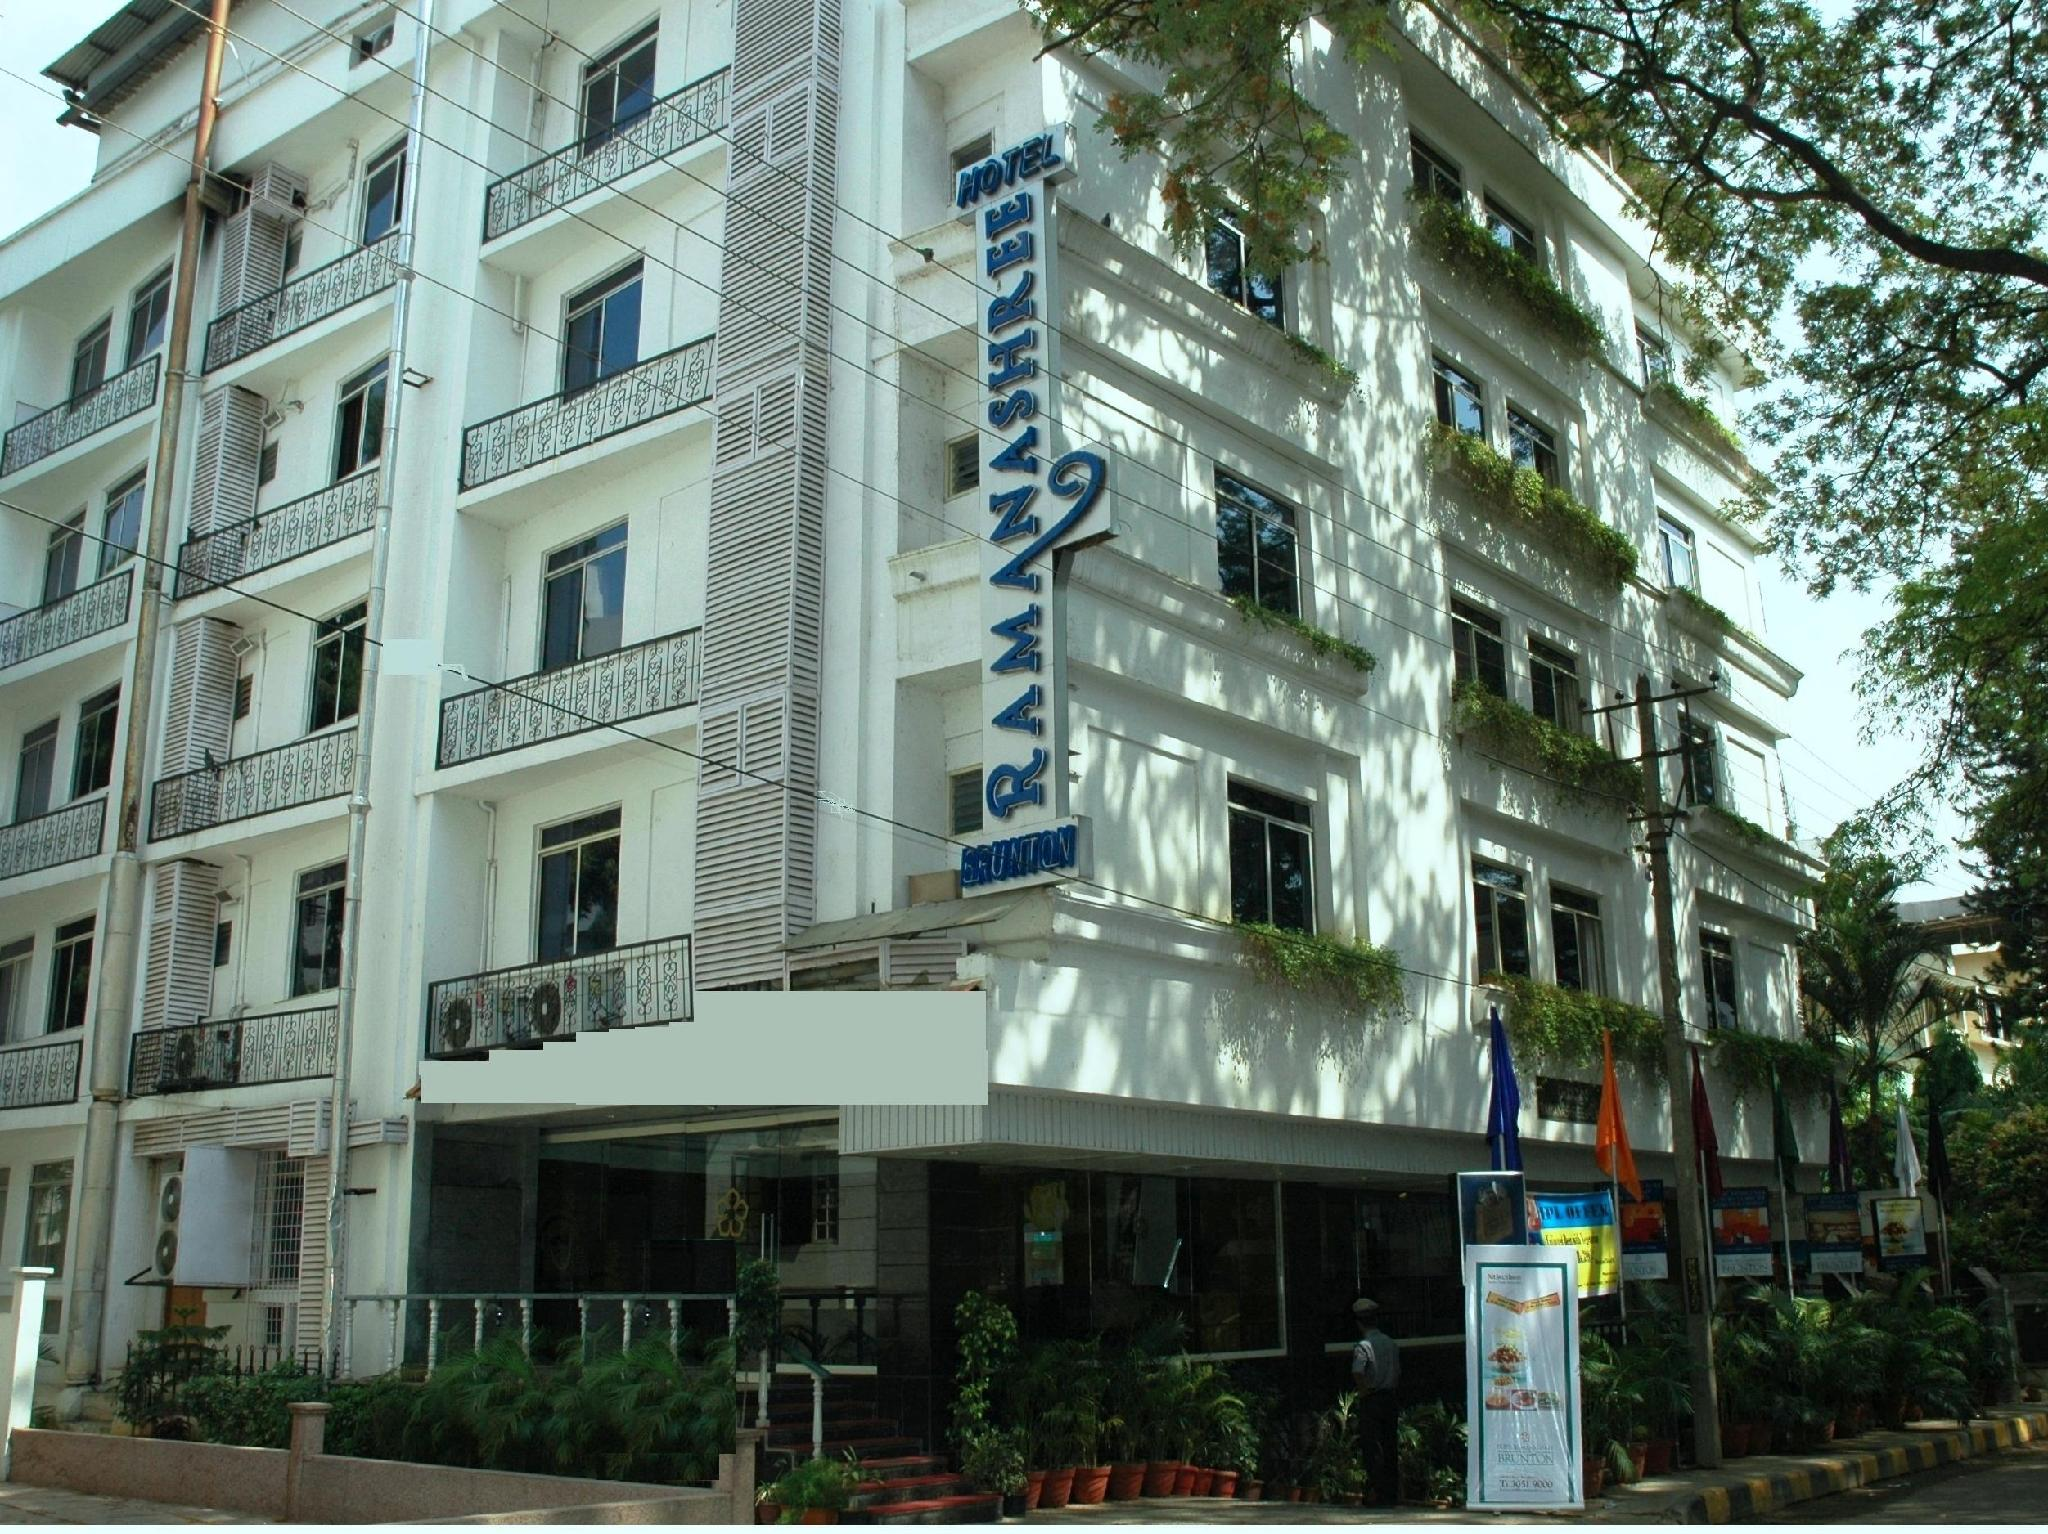 Ramanashree Brunton Hotel - Hotel and accommodation in India in Bengaluru / Bangalore